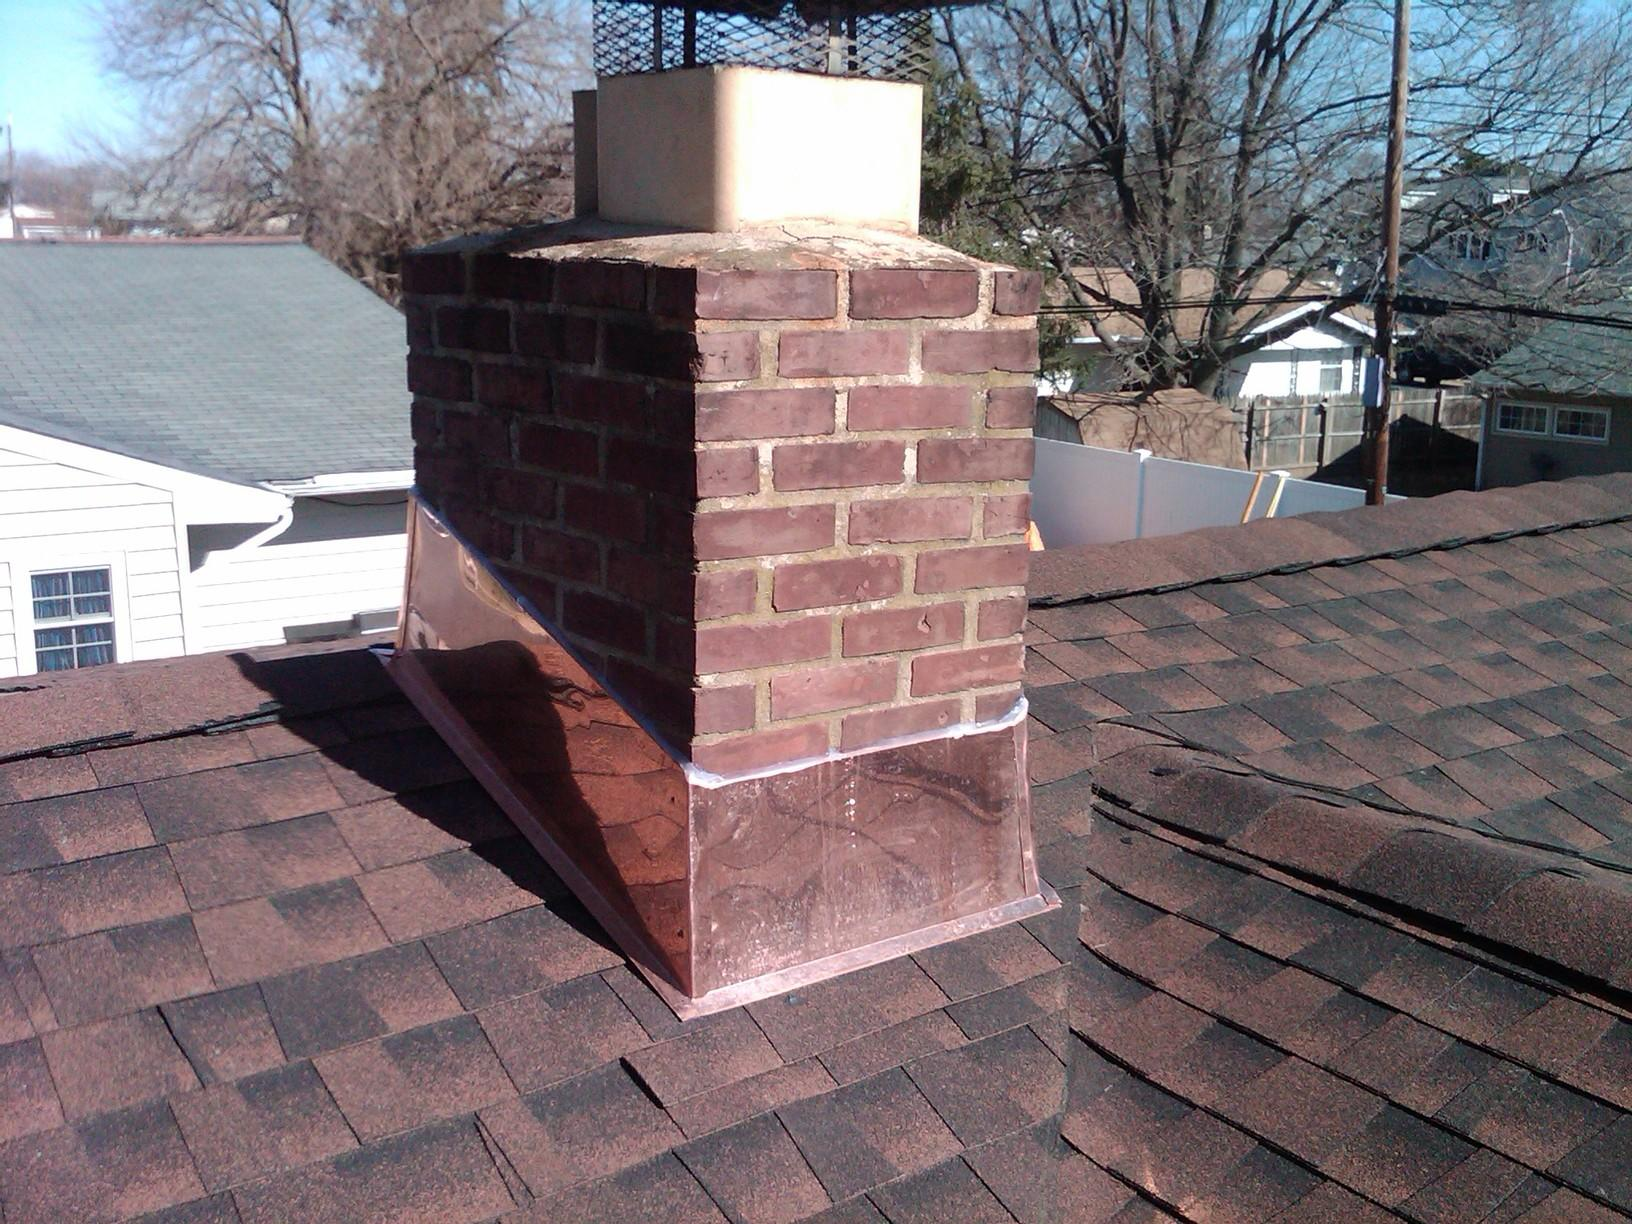 Asphalt roof with a copper chimney in Berkeley Heights, NJ